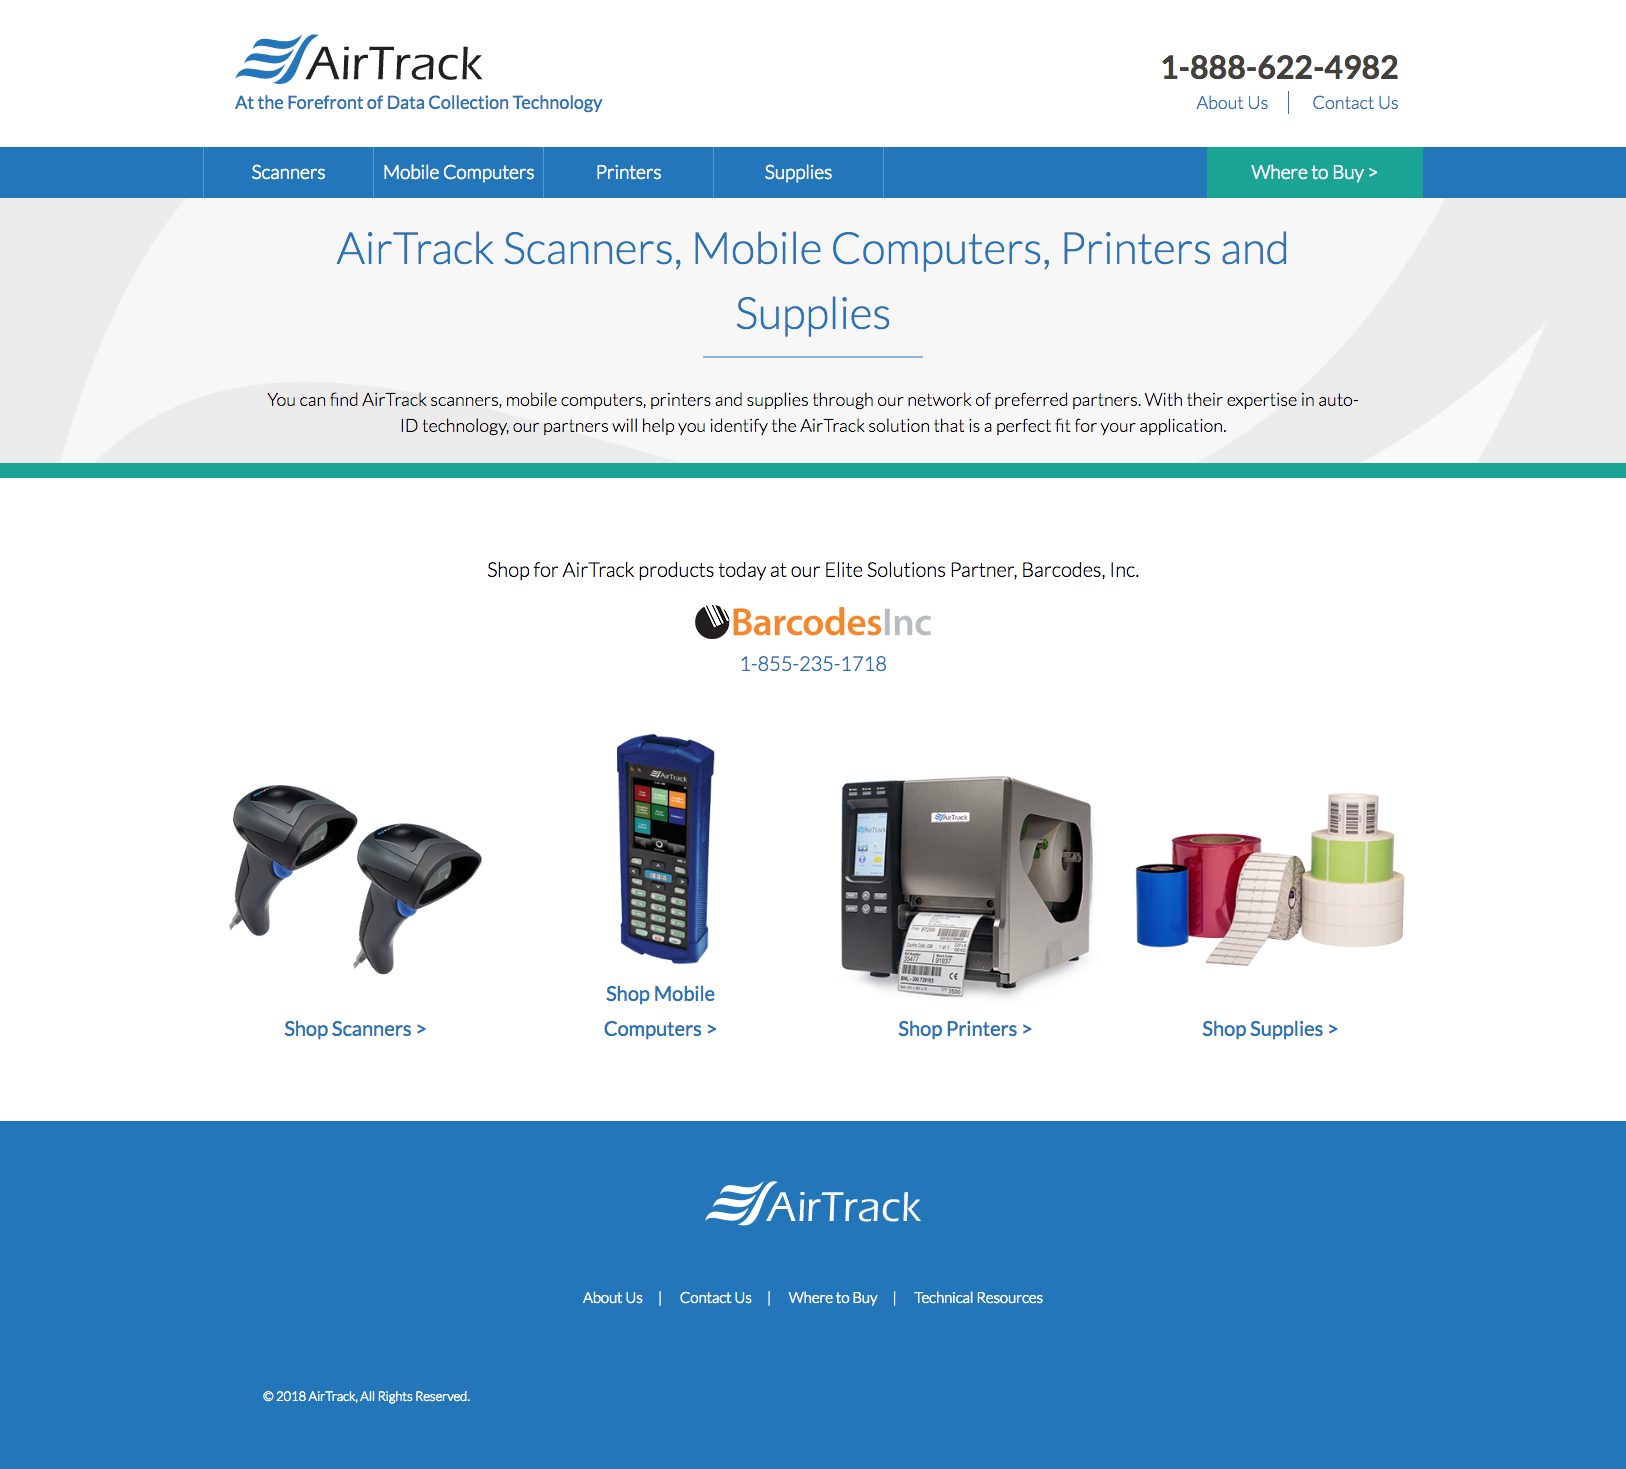 screencapture-airtrack-where-to-buy-1520276156906